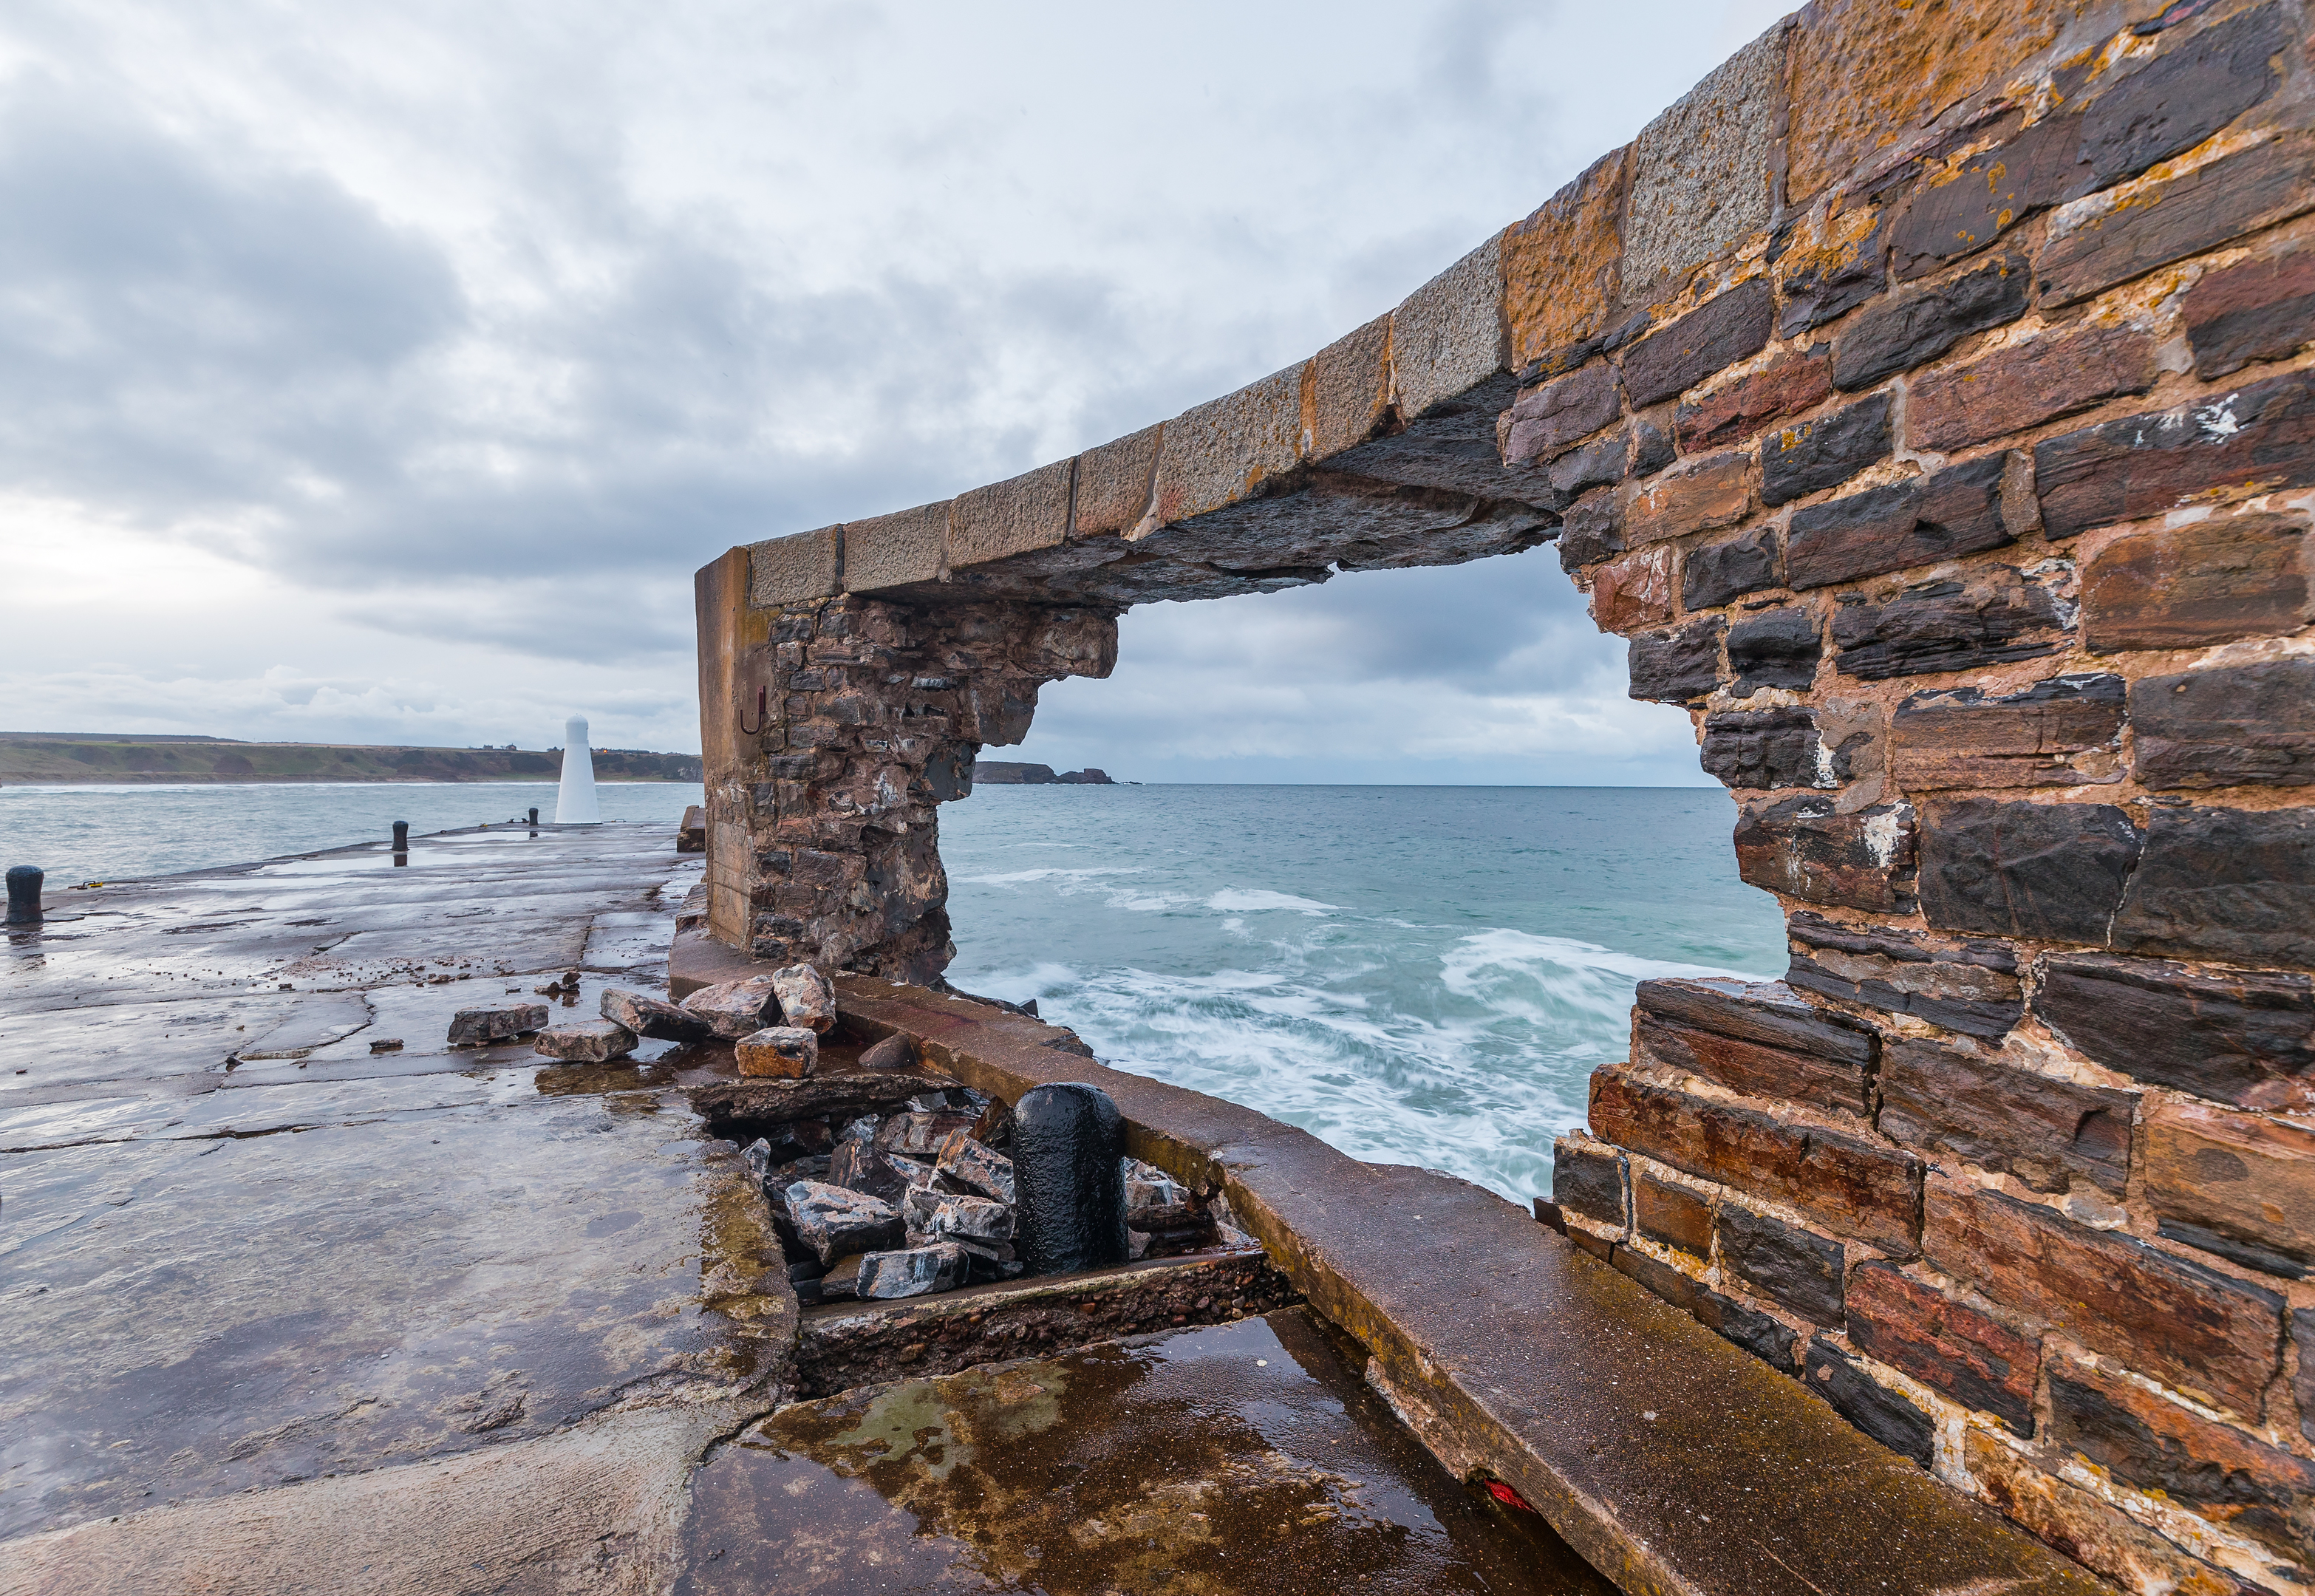 This is the breakwater pier wall of Cullen Harbour which has sustained further substantial damage due to strong waves.